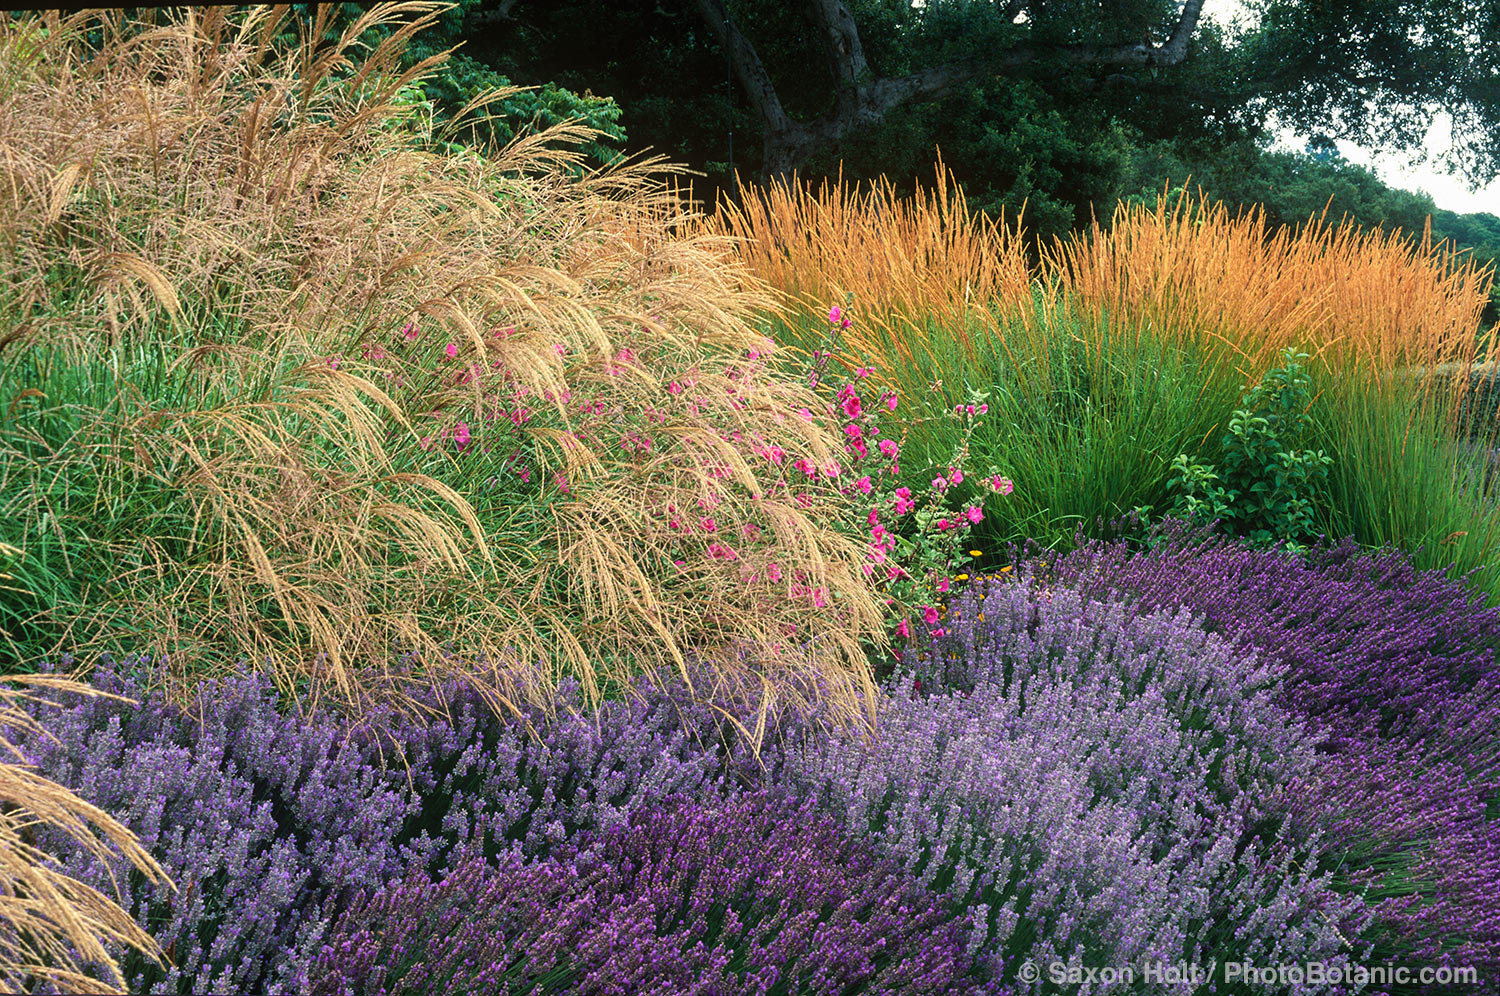 The summer dry garden summer dry celebrate plants in - Garden design using grasses ...